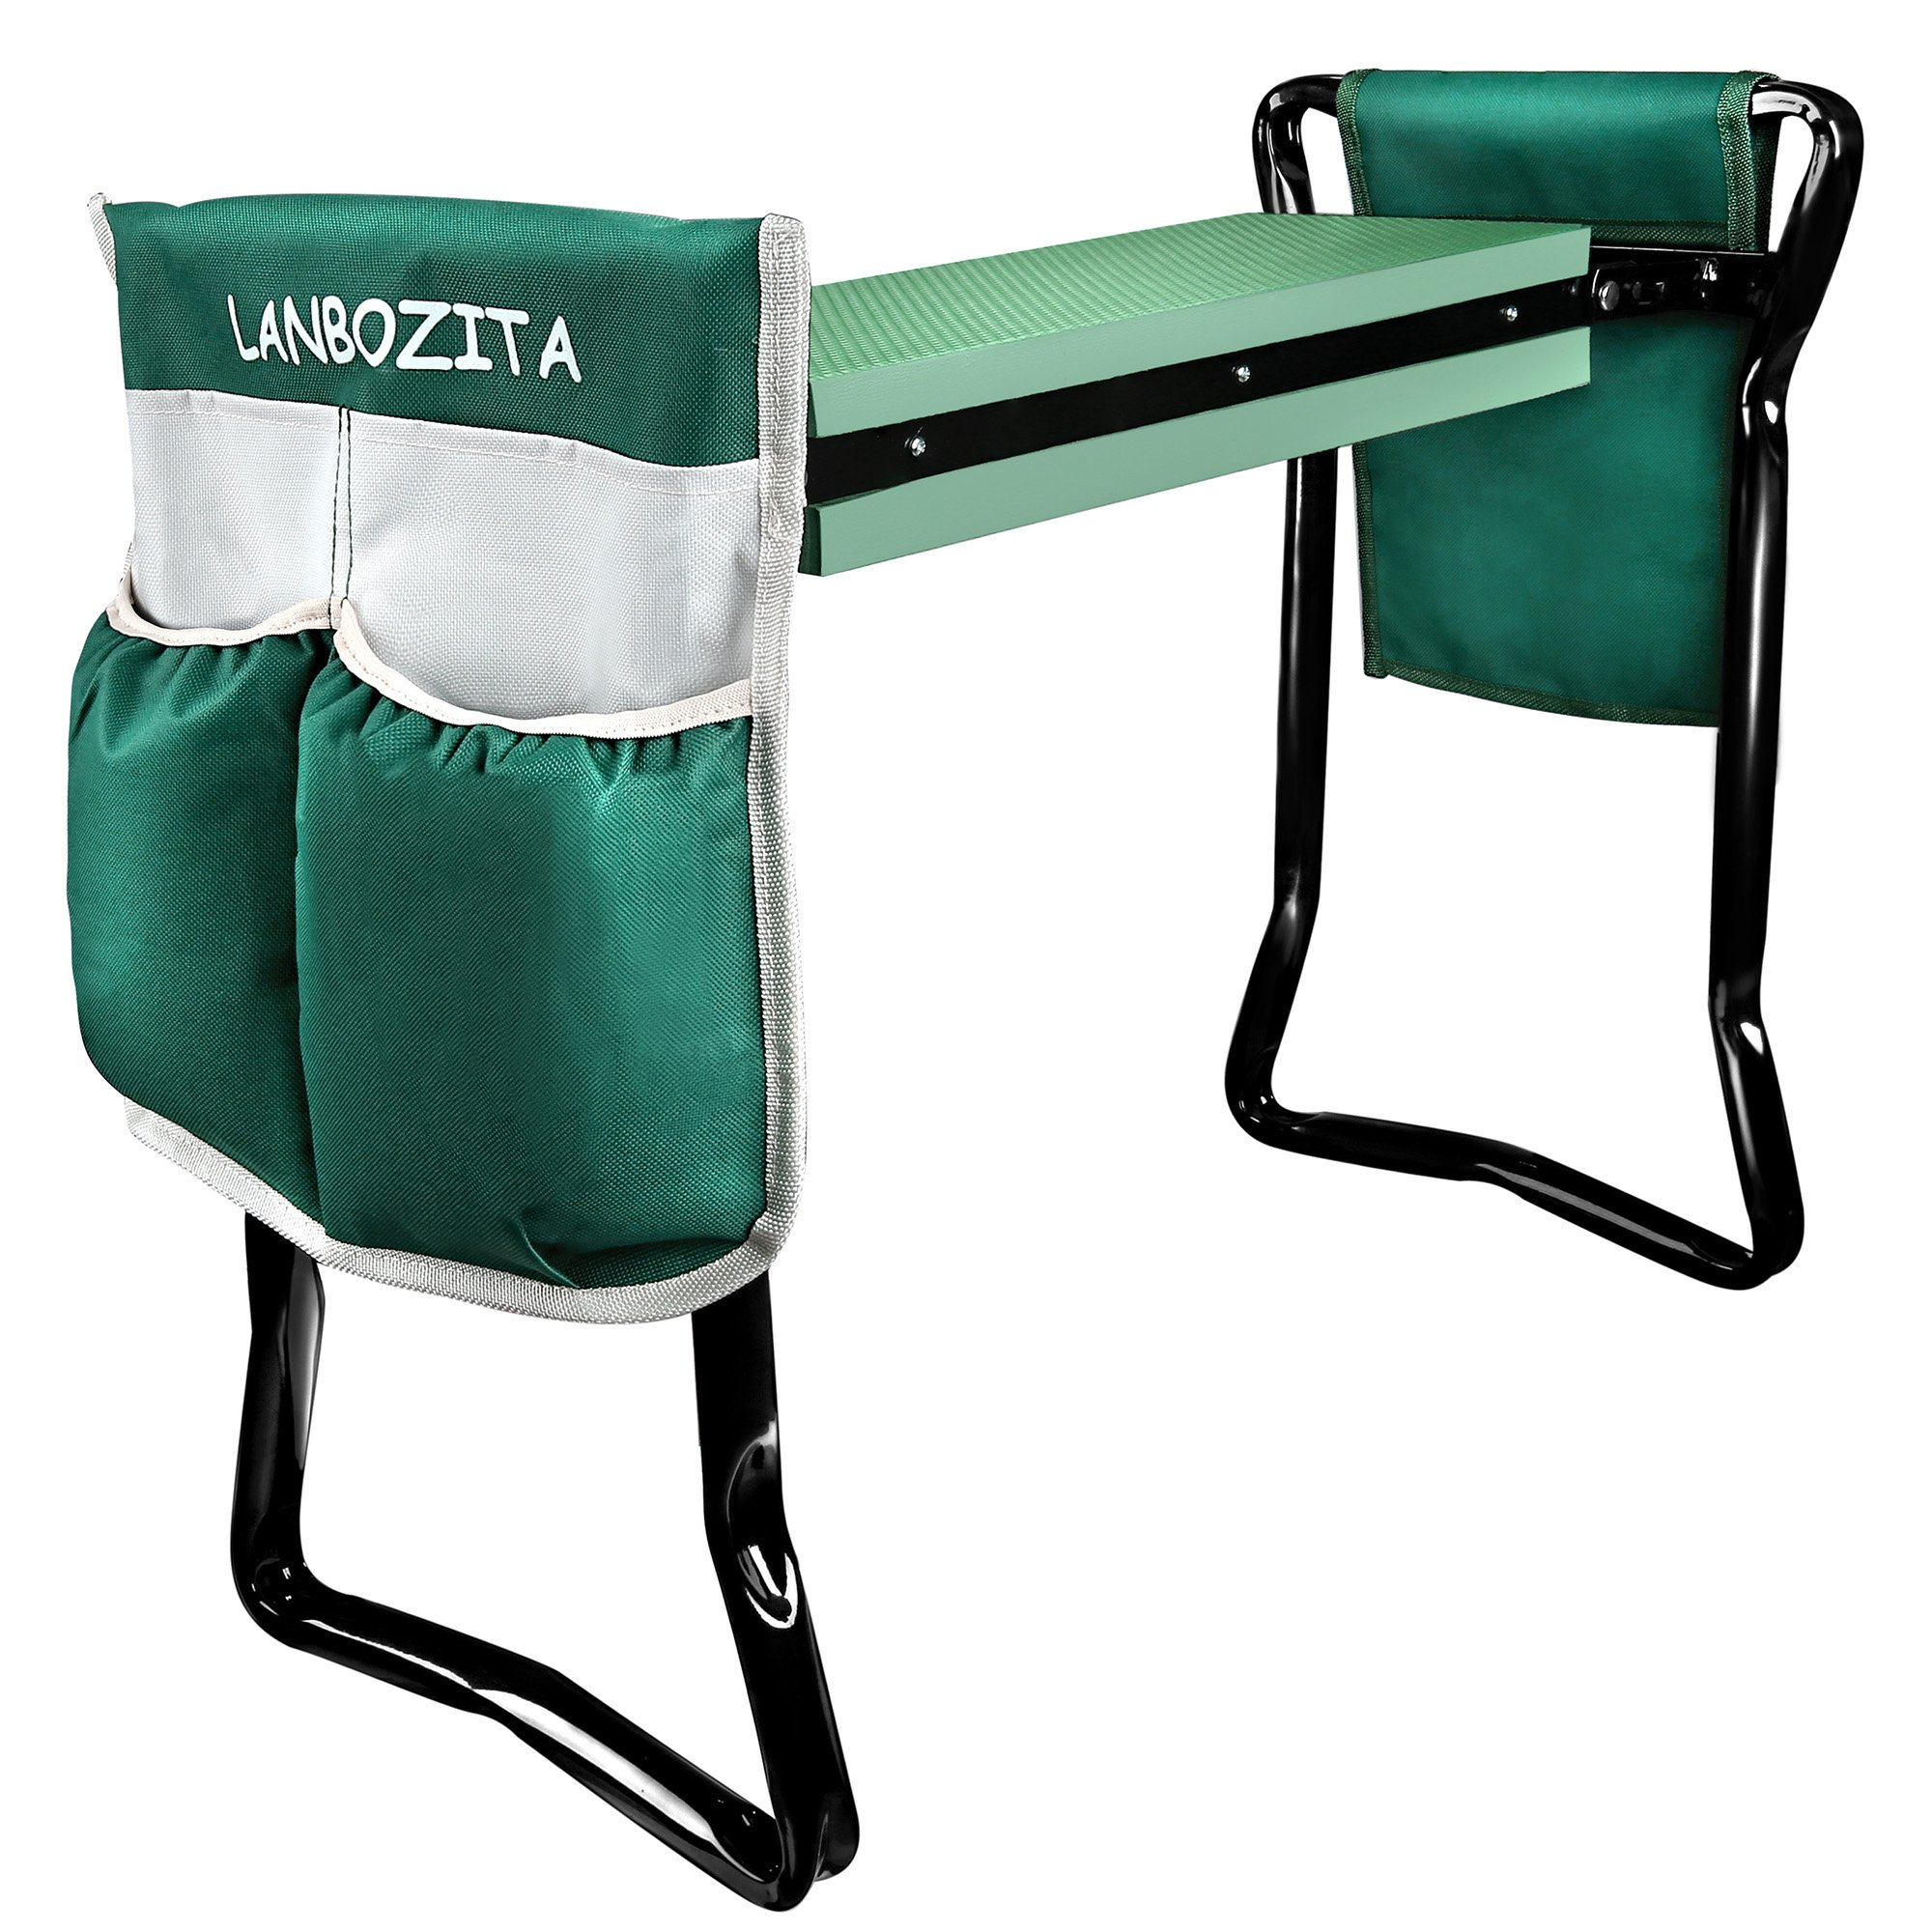 LANBOZITA Garden Seat Bench and Kneeler Foldable Stool With 2 Tool Pouches